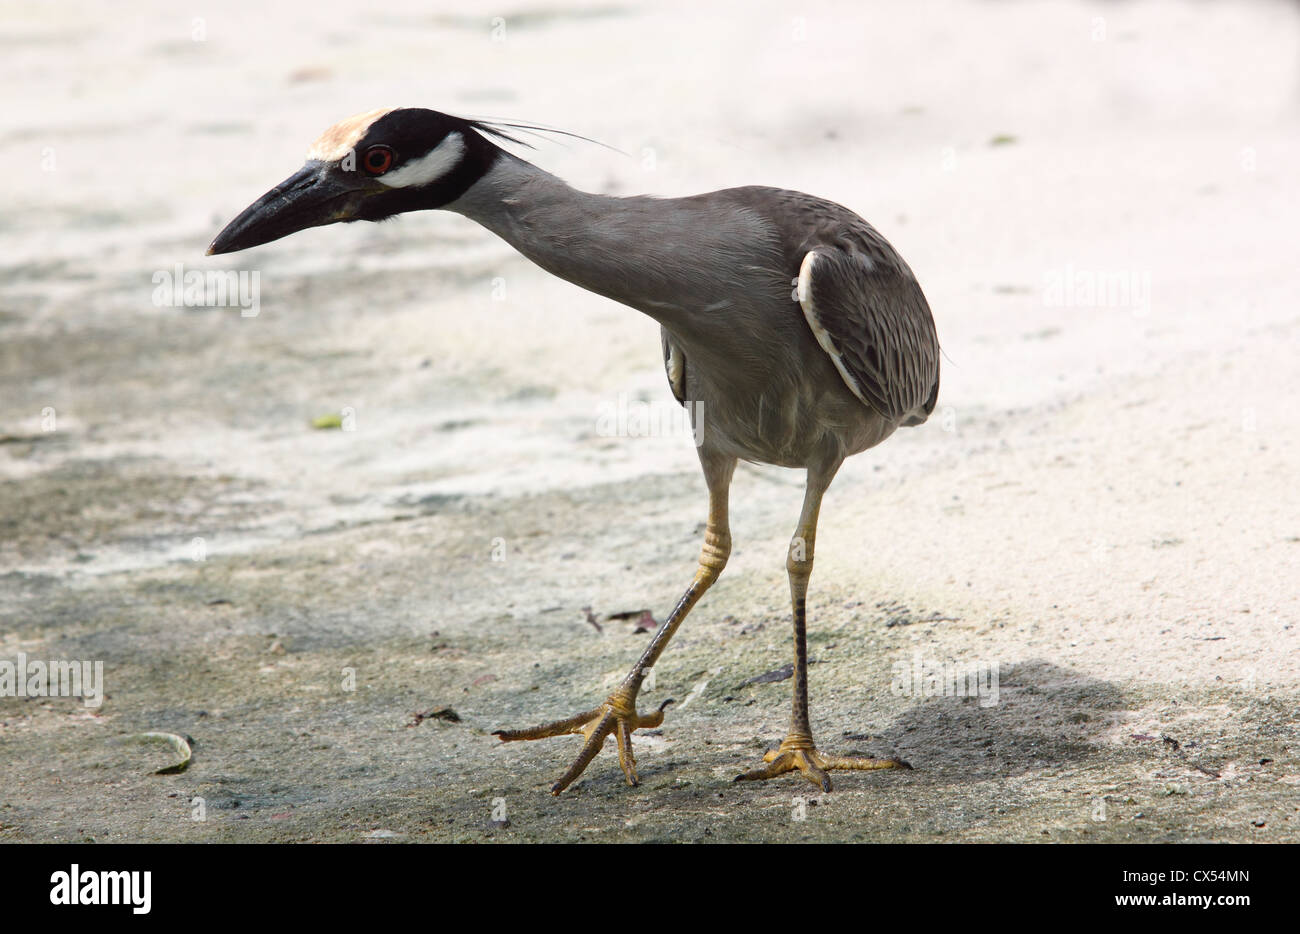 What's Up? - Yellow-crowned Night-heron, Antigua. - Stock Image